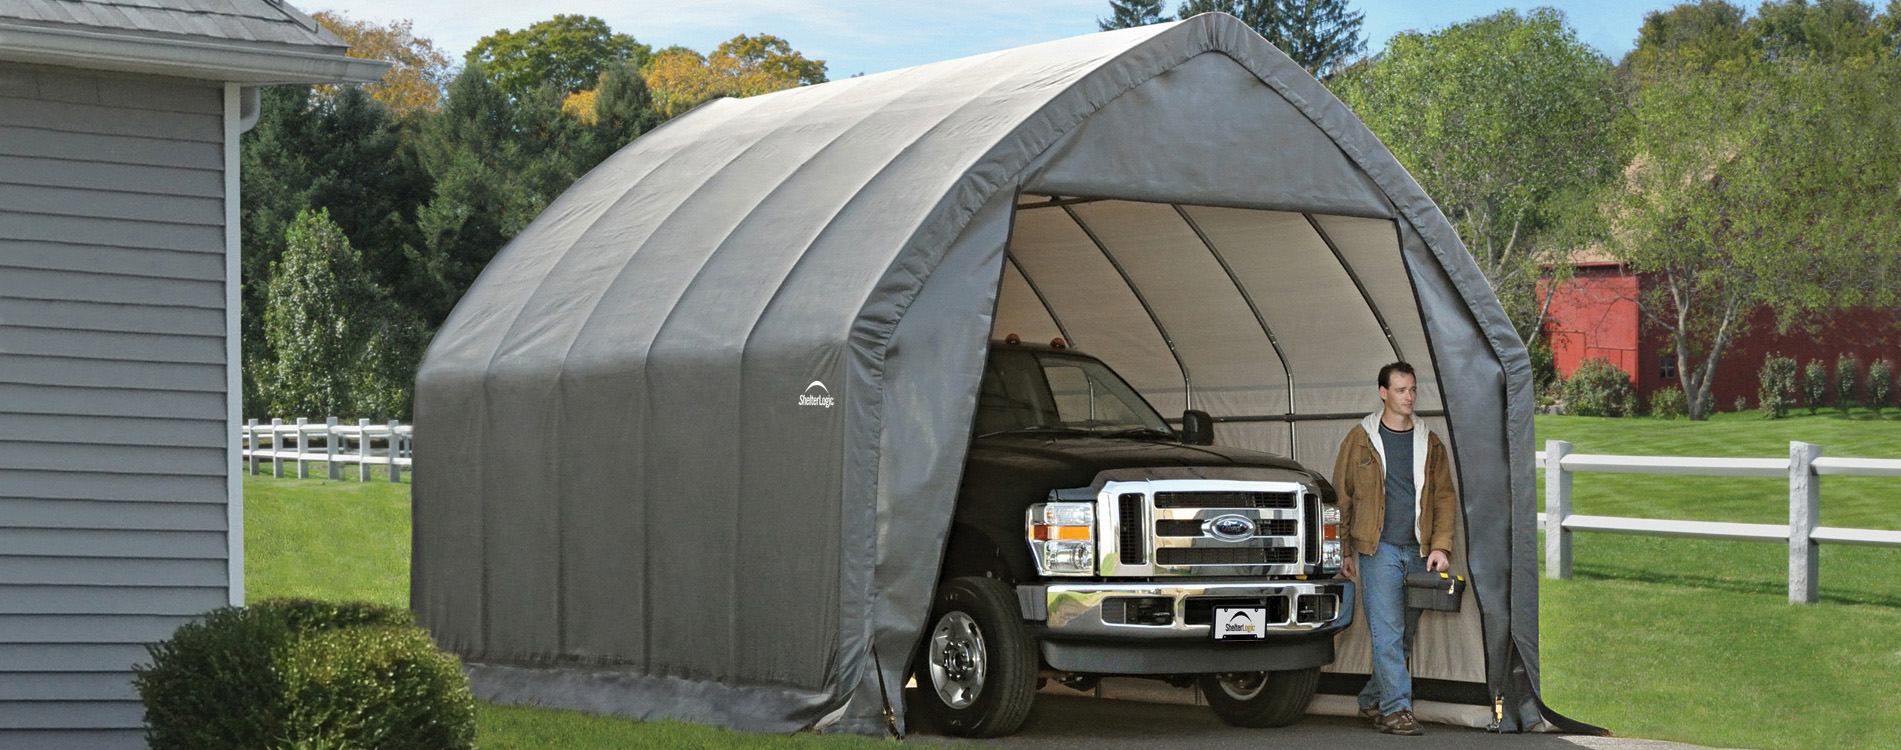 Shelters Of New England Portable Garages Carports And Canopies Including ShelterLogic And